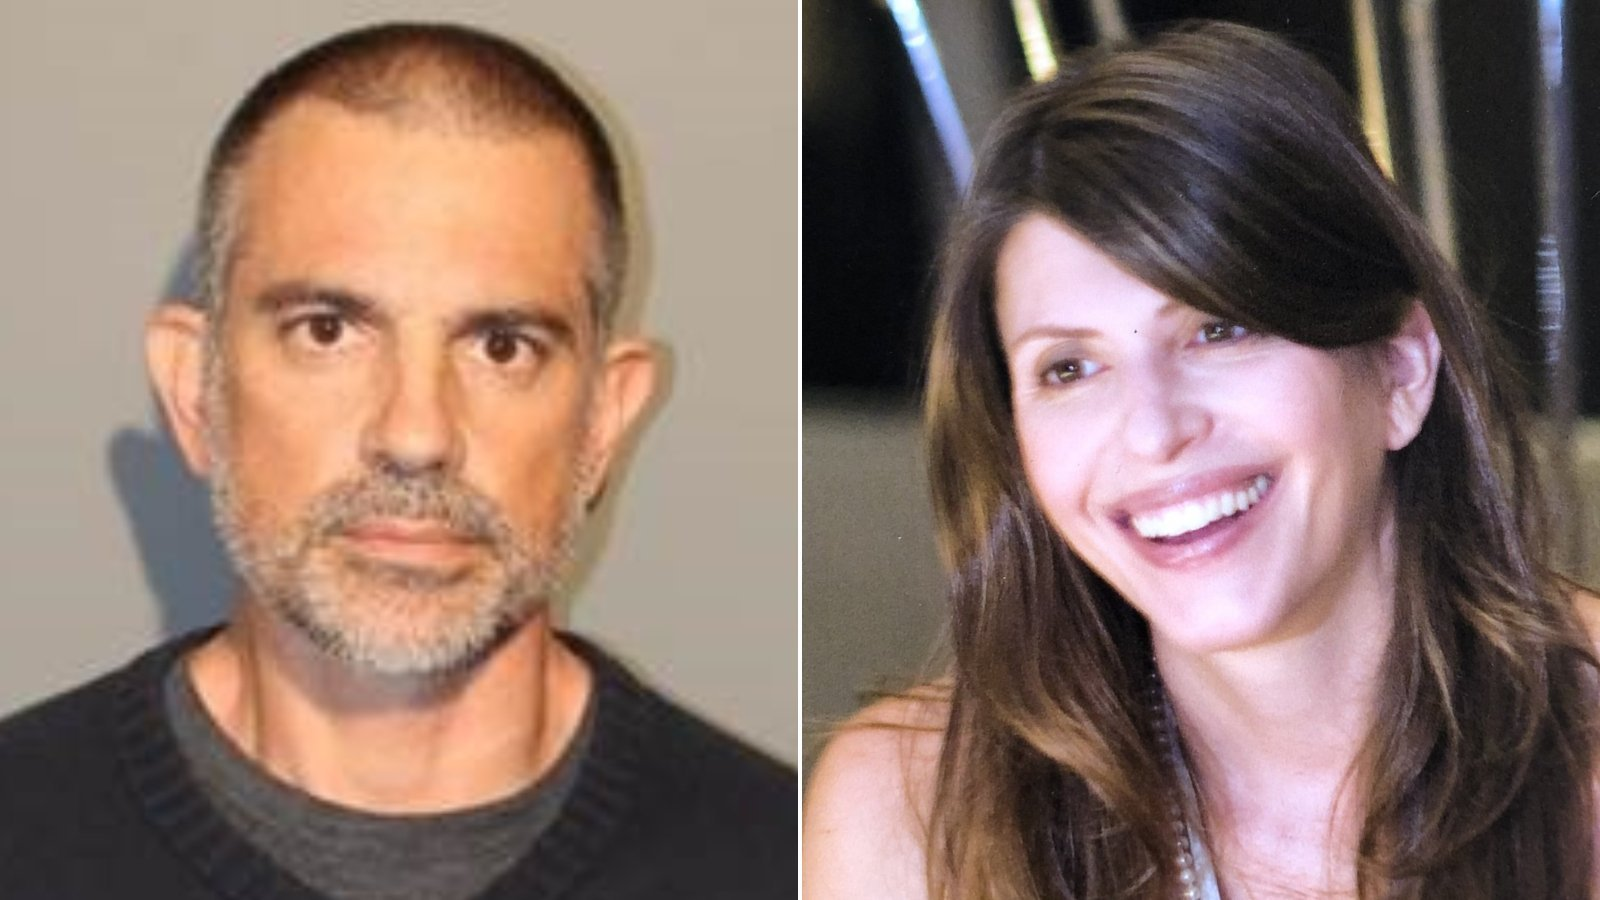 Estranged husband of Jennifer Dulos pleaded not guilty to new charge in herdisappearance